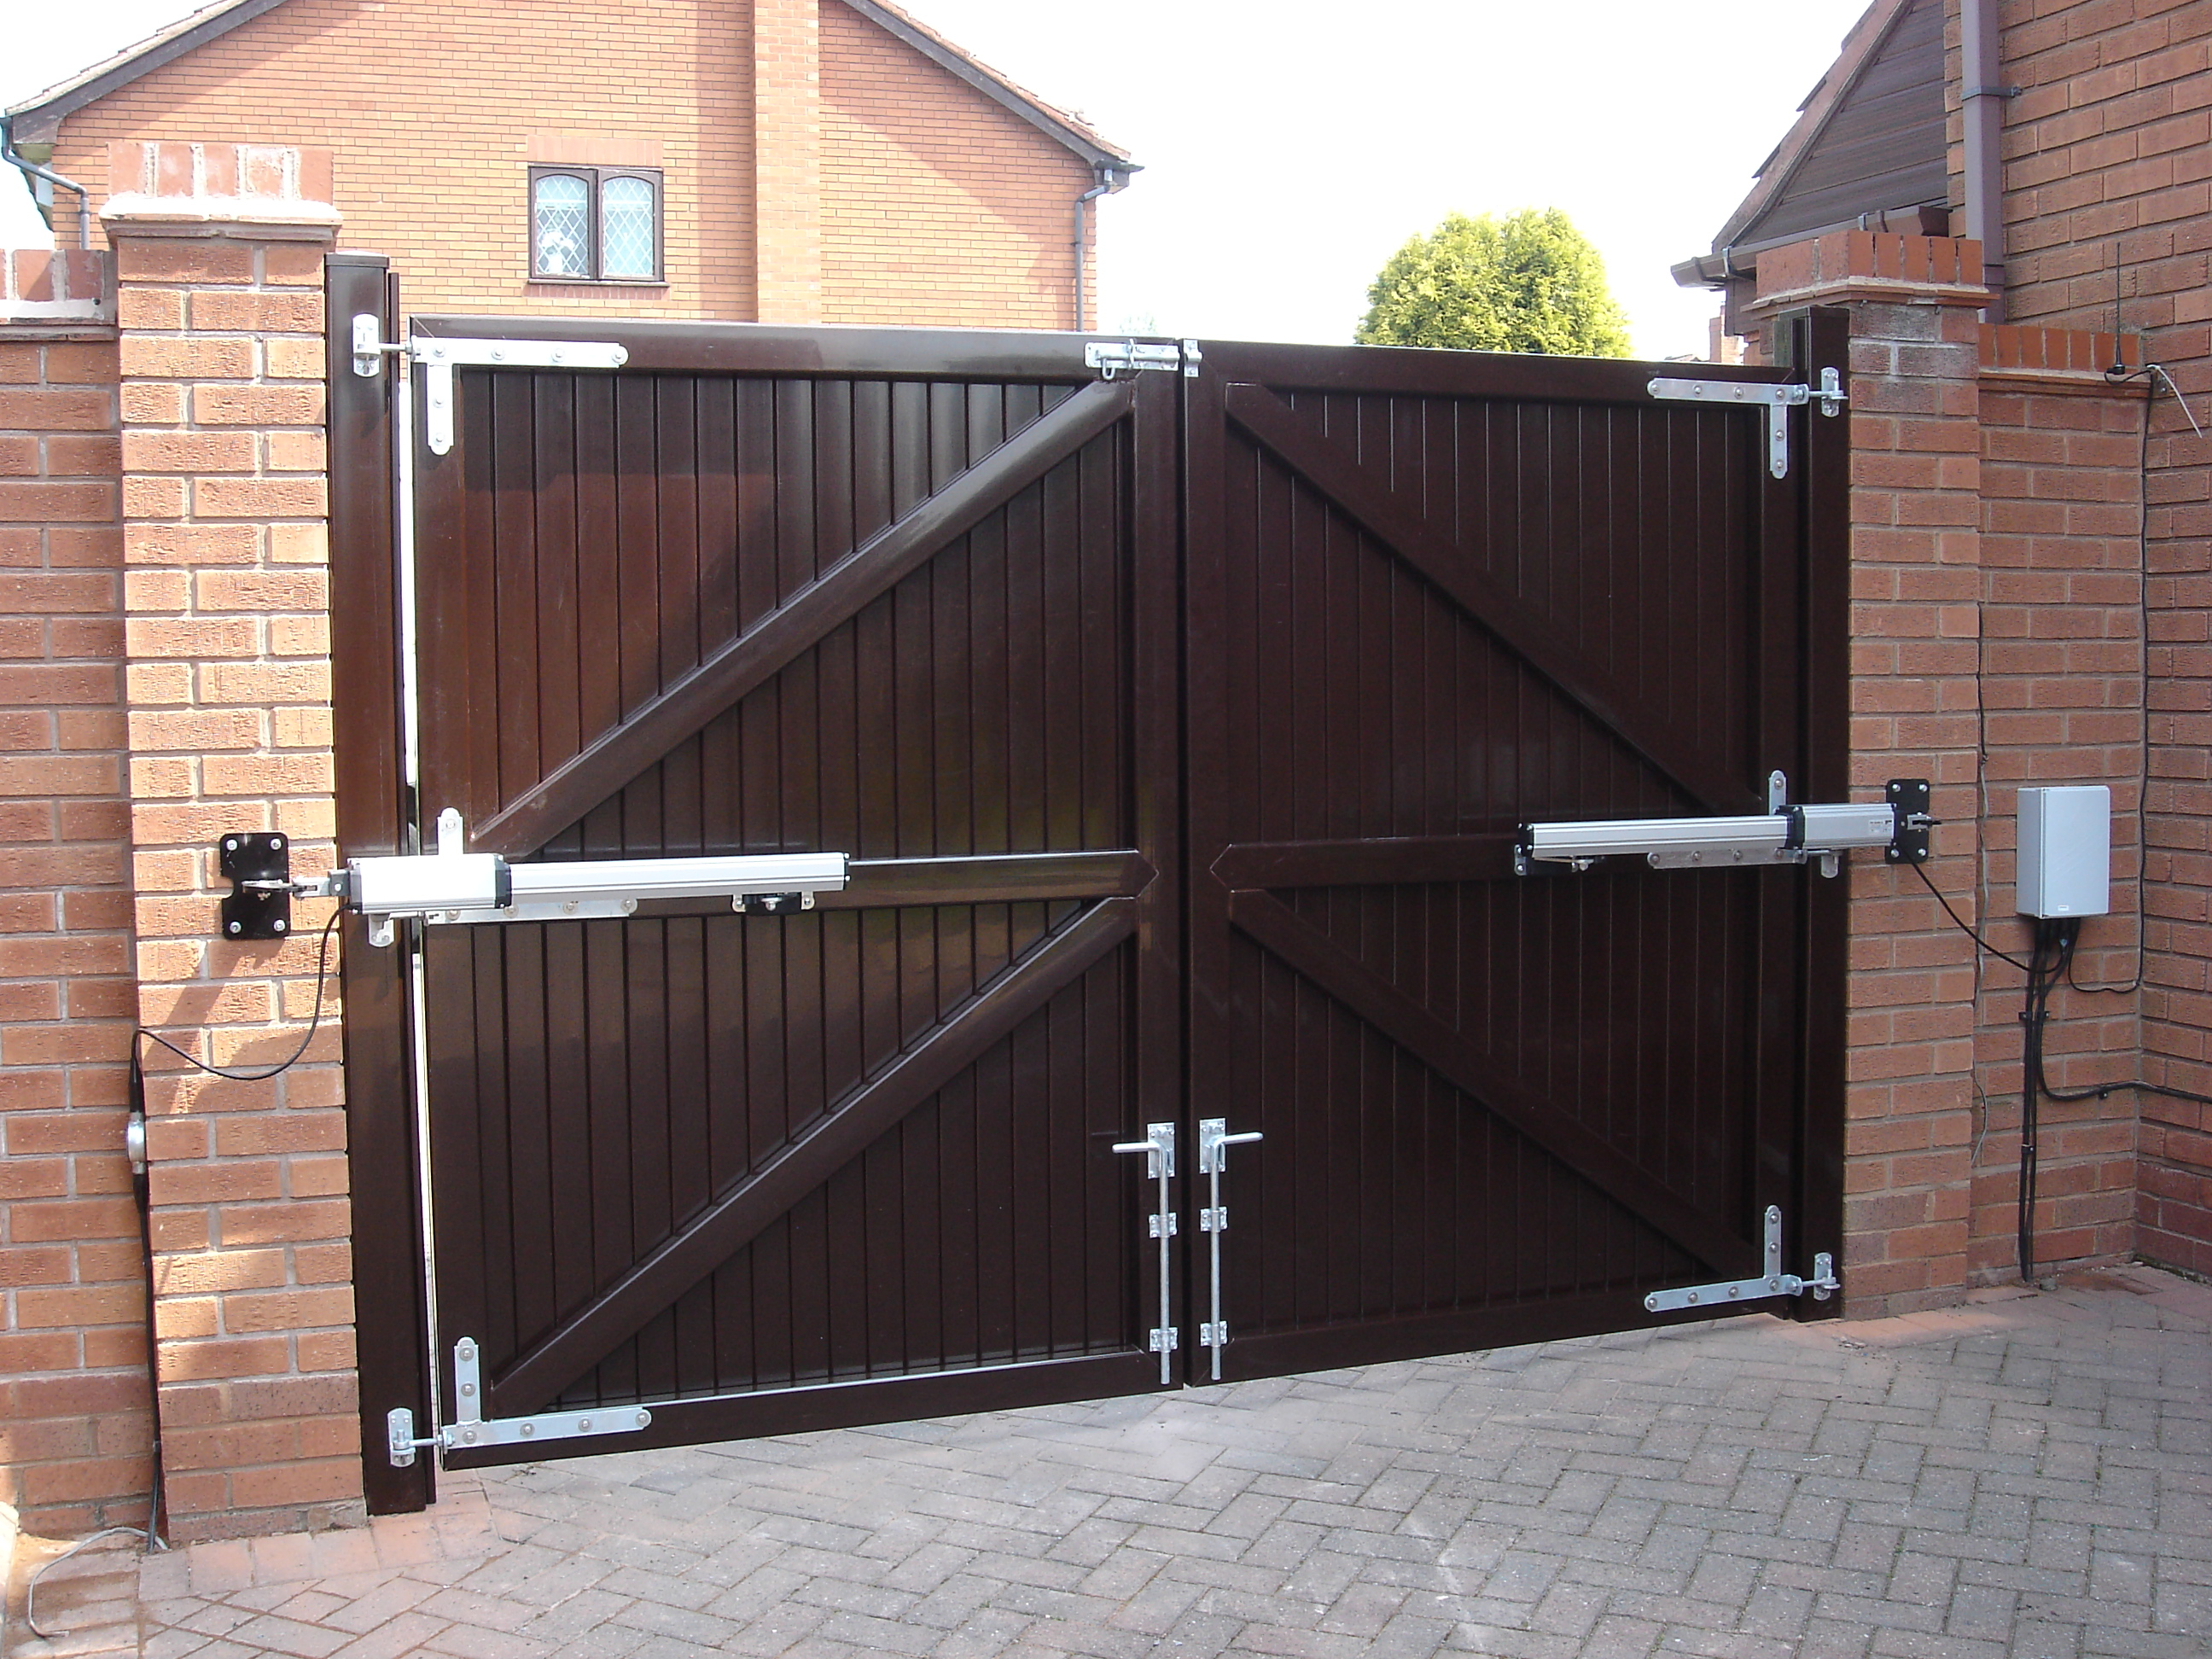 Upvc Gates Uneek International Upvc Decking Ramps And